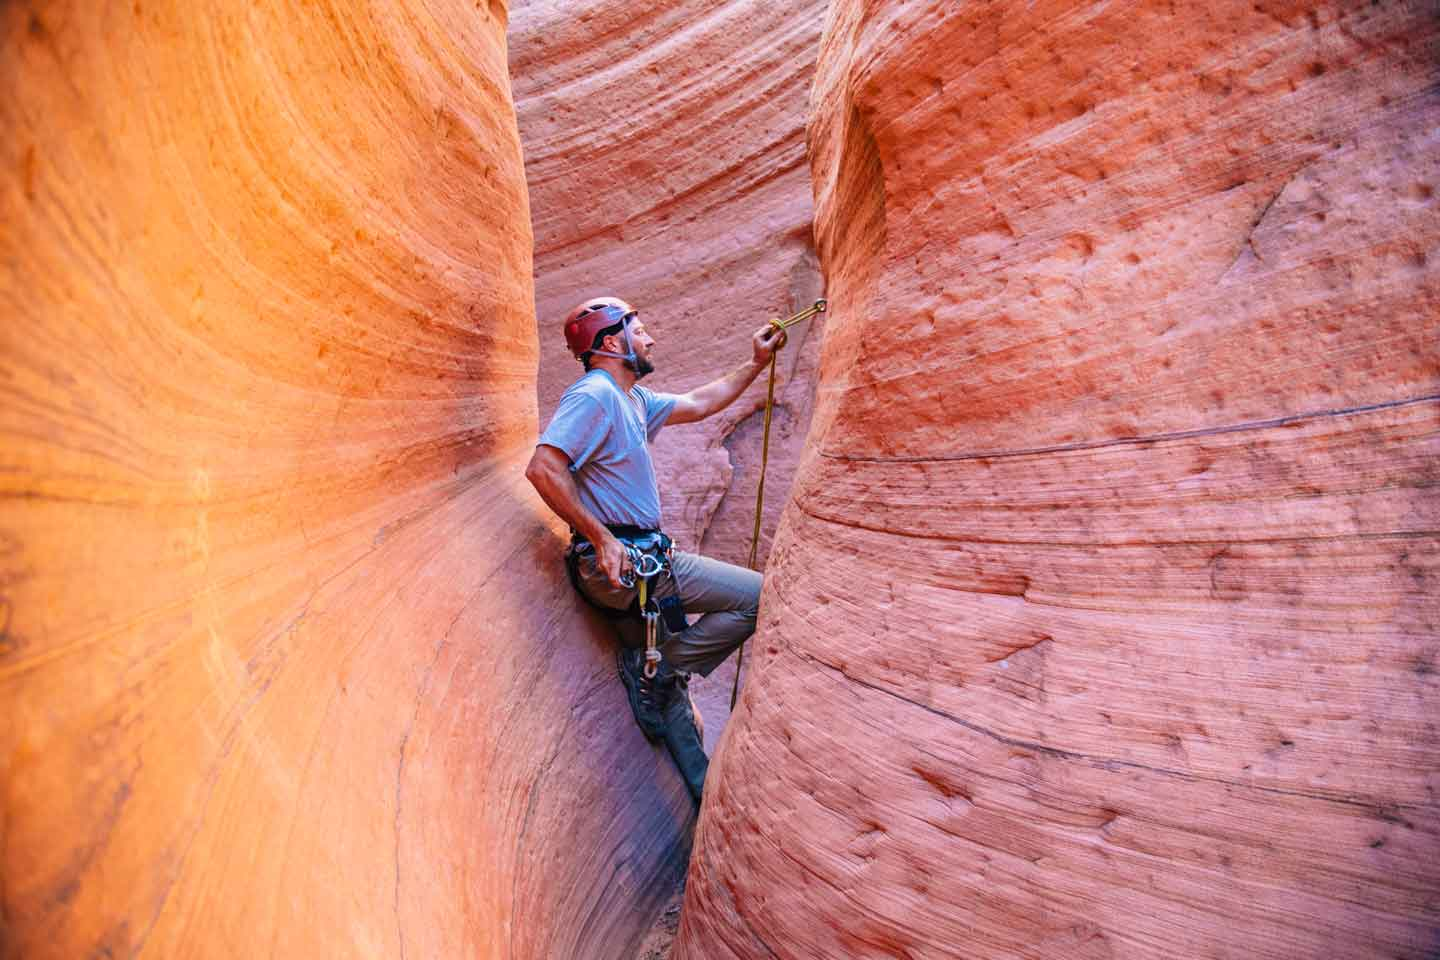 Canyoneering Zion Adventure Company The Huntress Slot Canyon 5